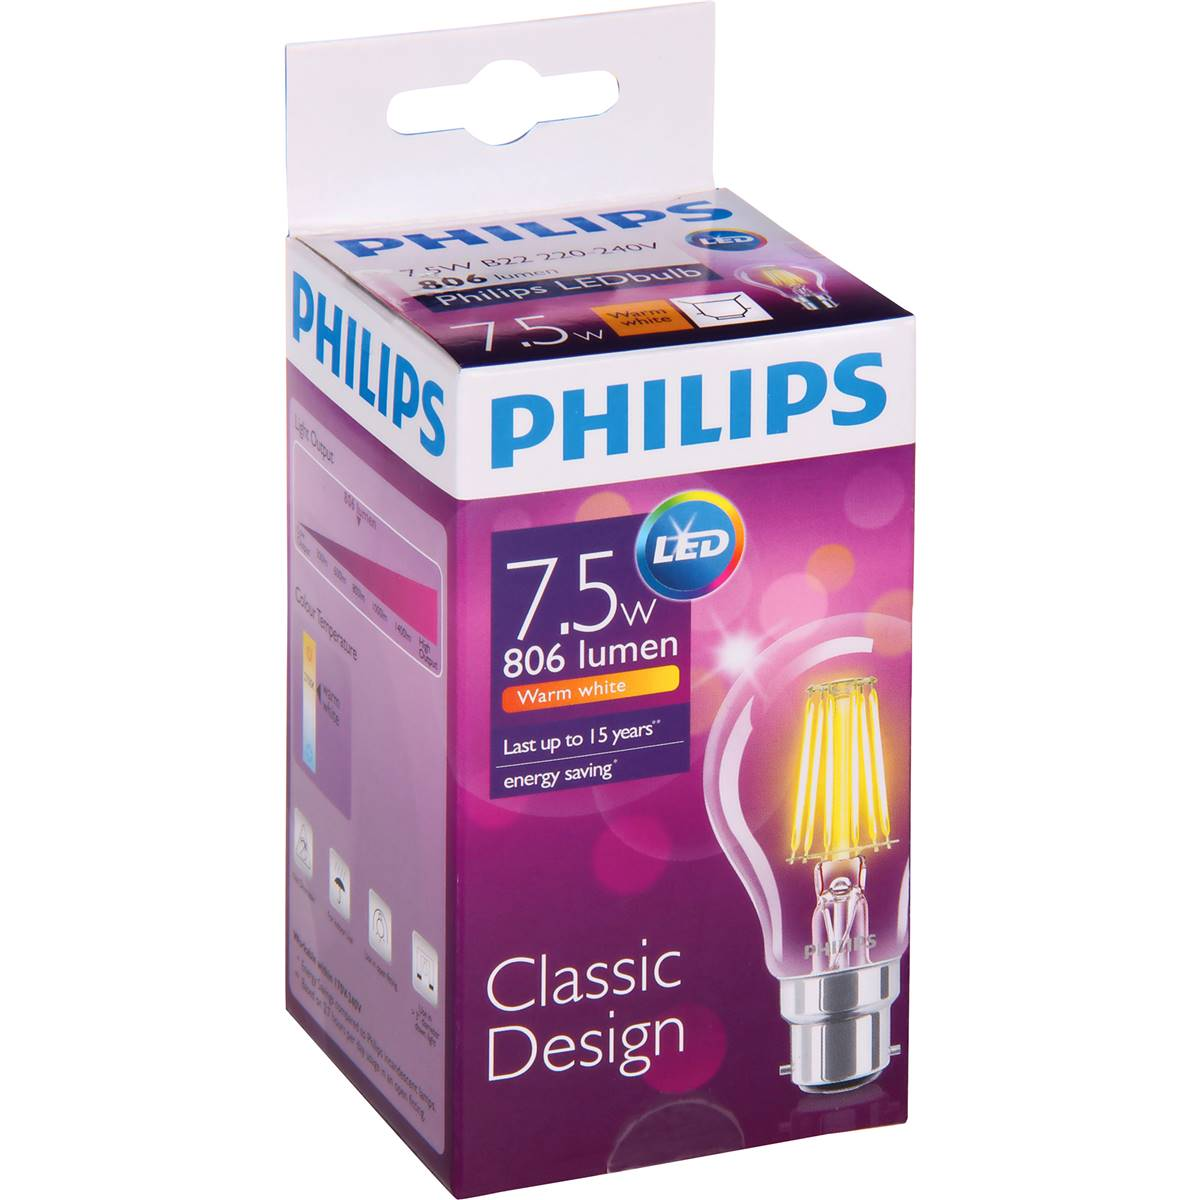 Woolworths Led Globes Philips Light Globe Led Filament 806lm B22 Each Woolworths